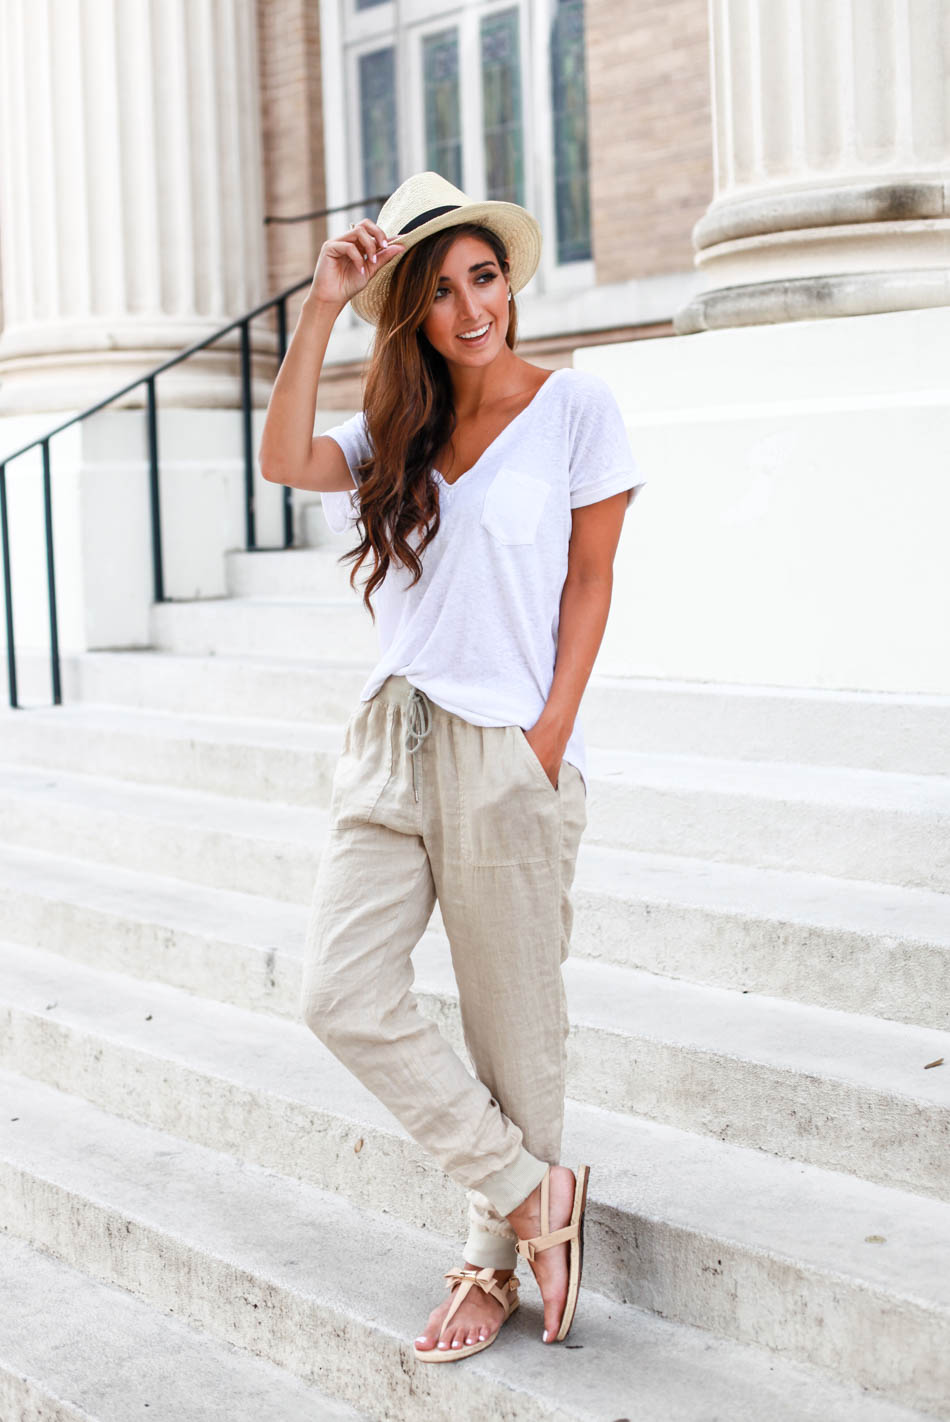 How to be Comfortable and Chic with Fashion